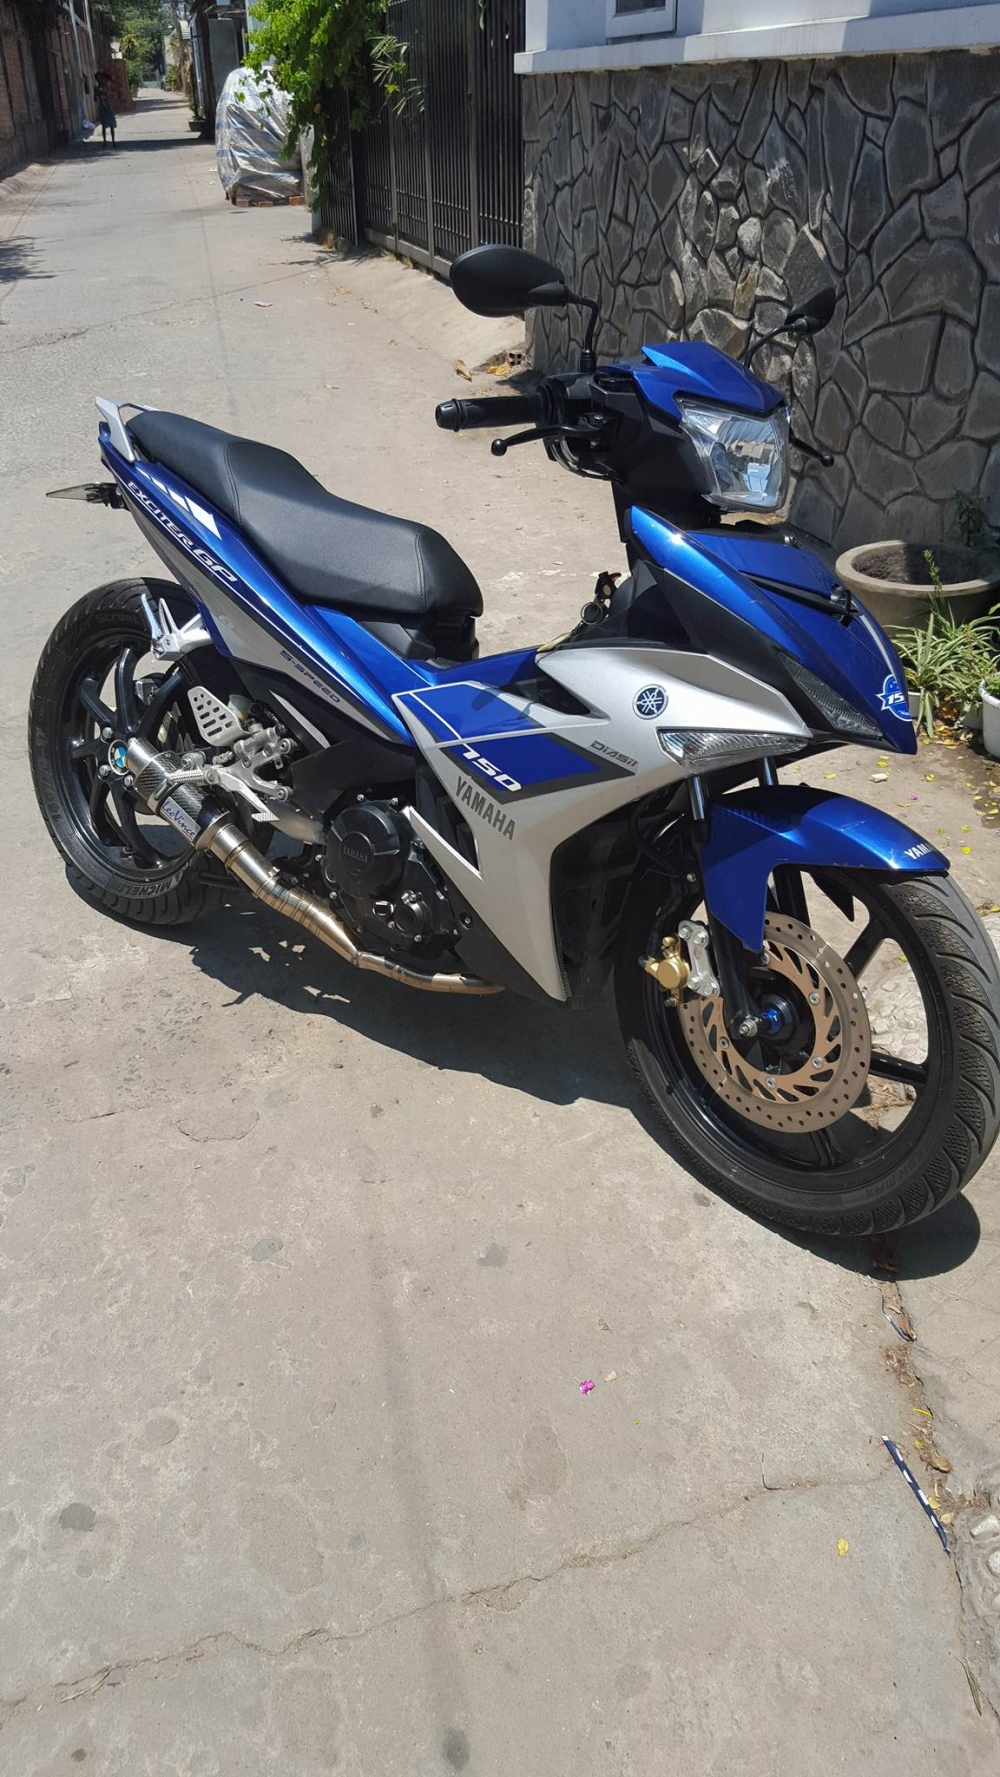 Exciter 150 an tuong voi dan chan 1 gap - 2